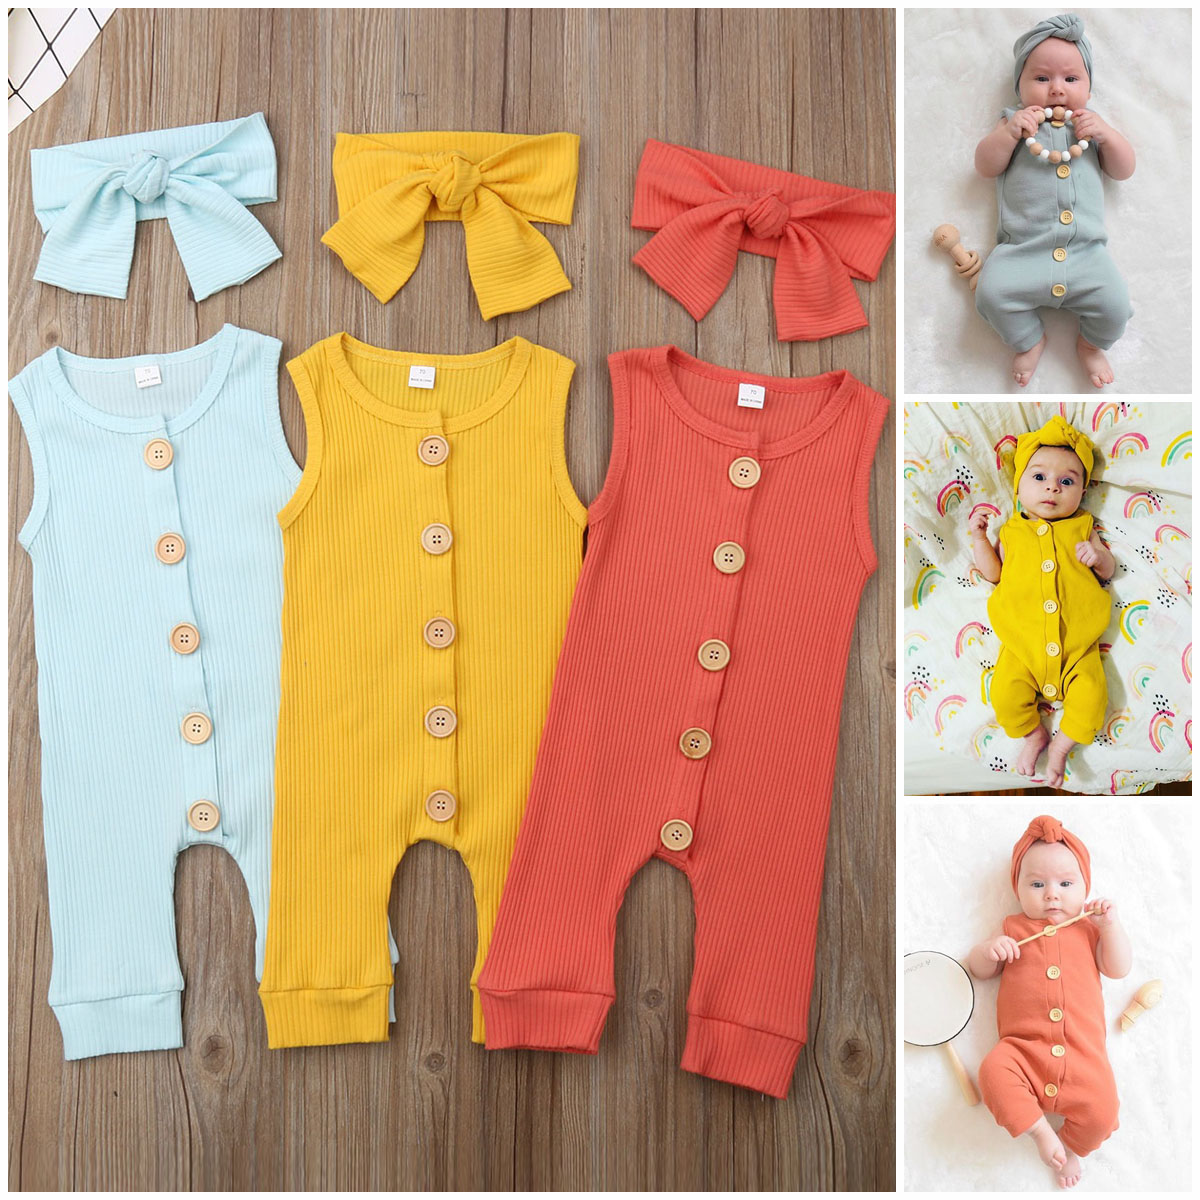 HTB1fc.TOVzqK1RjSZFoq6zfcXXaD 2019 Summer Solid Rompers Newborn Infant Baby Girl Boy Outfit Cotton Romper Jumpsuit Bebe Kids Ropa Sleevless Casual Clothes Set